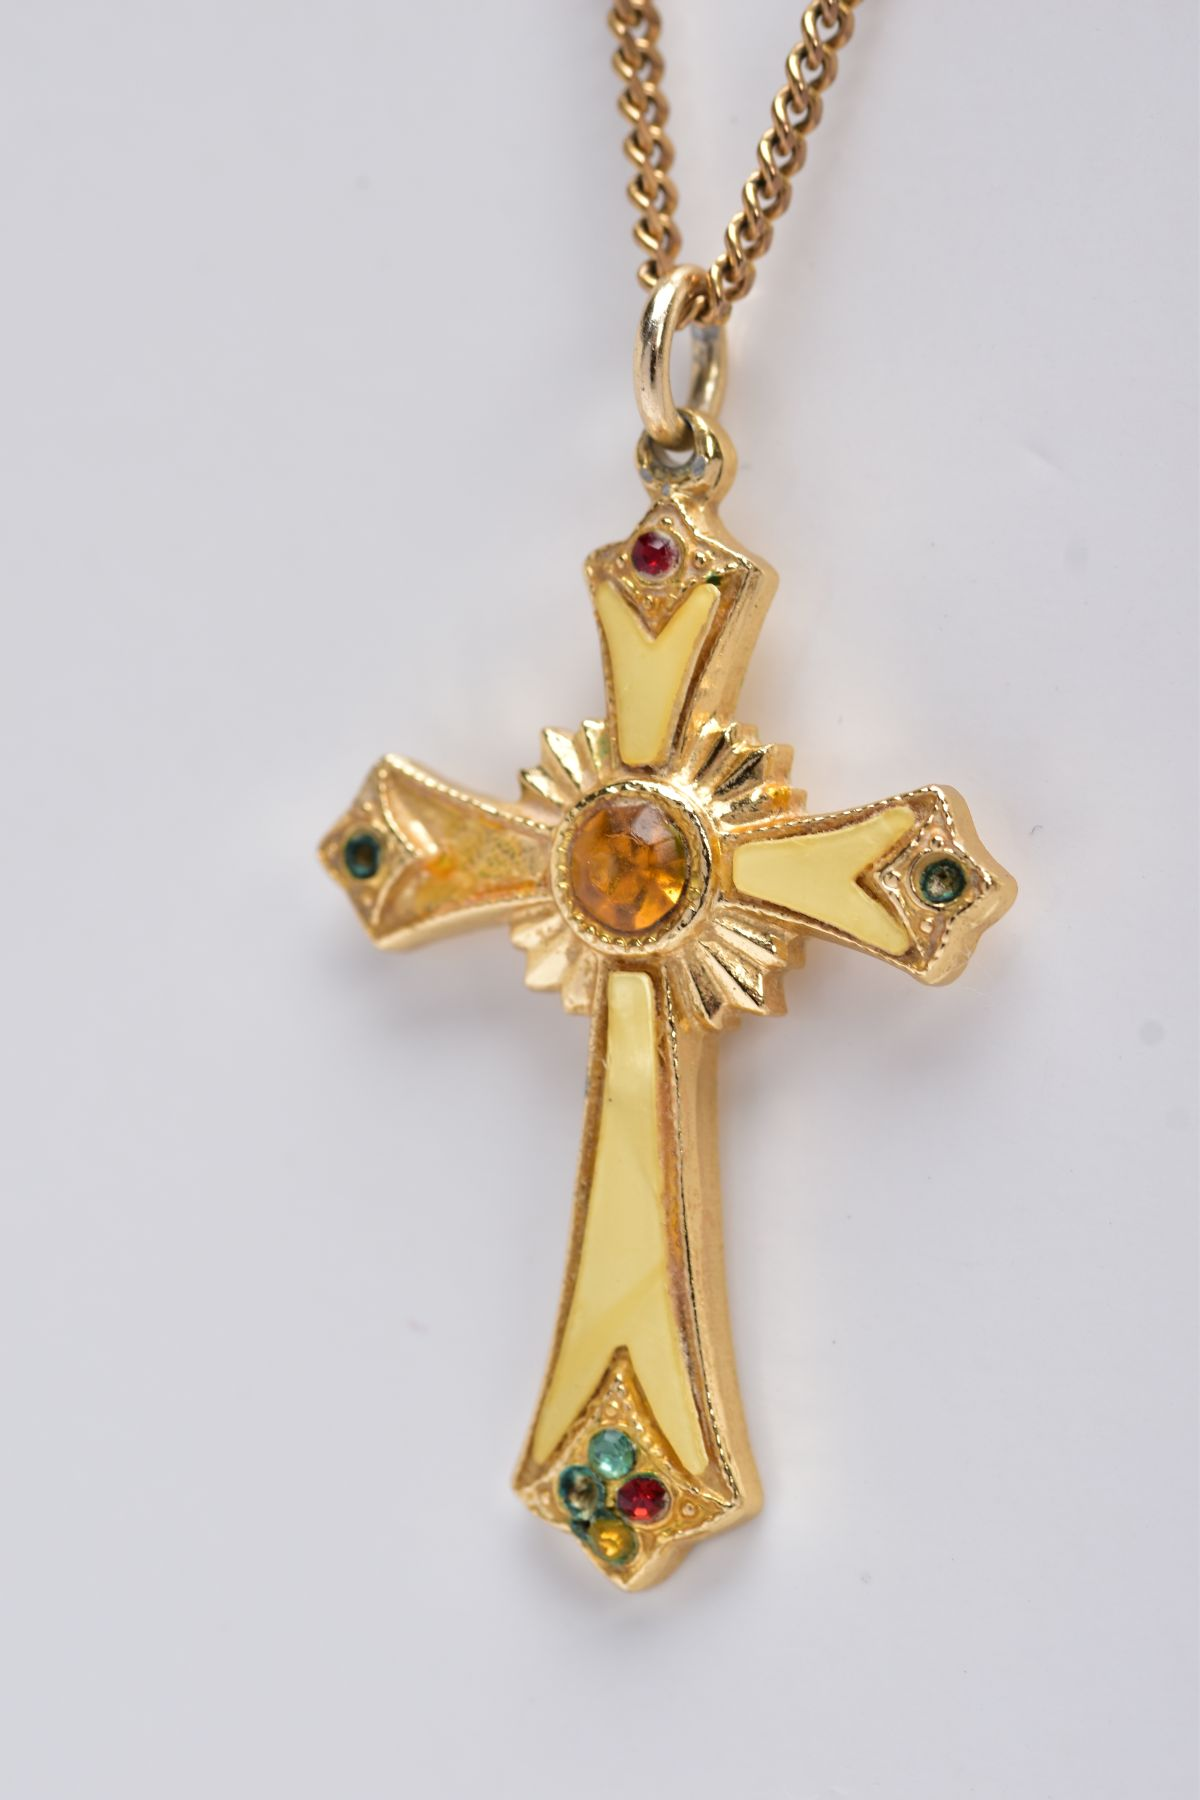 A 9CT GOLD CHAIN WITH A YELLOW METAL CROSS PENDANT, the curb link chain fitted with a spring - Image 3 of 4